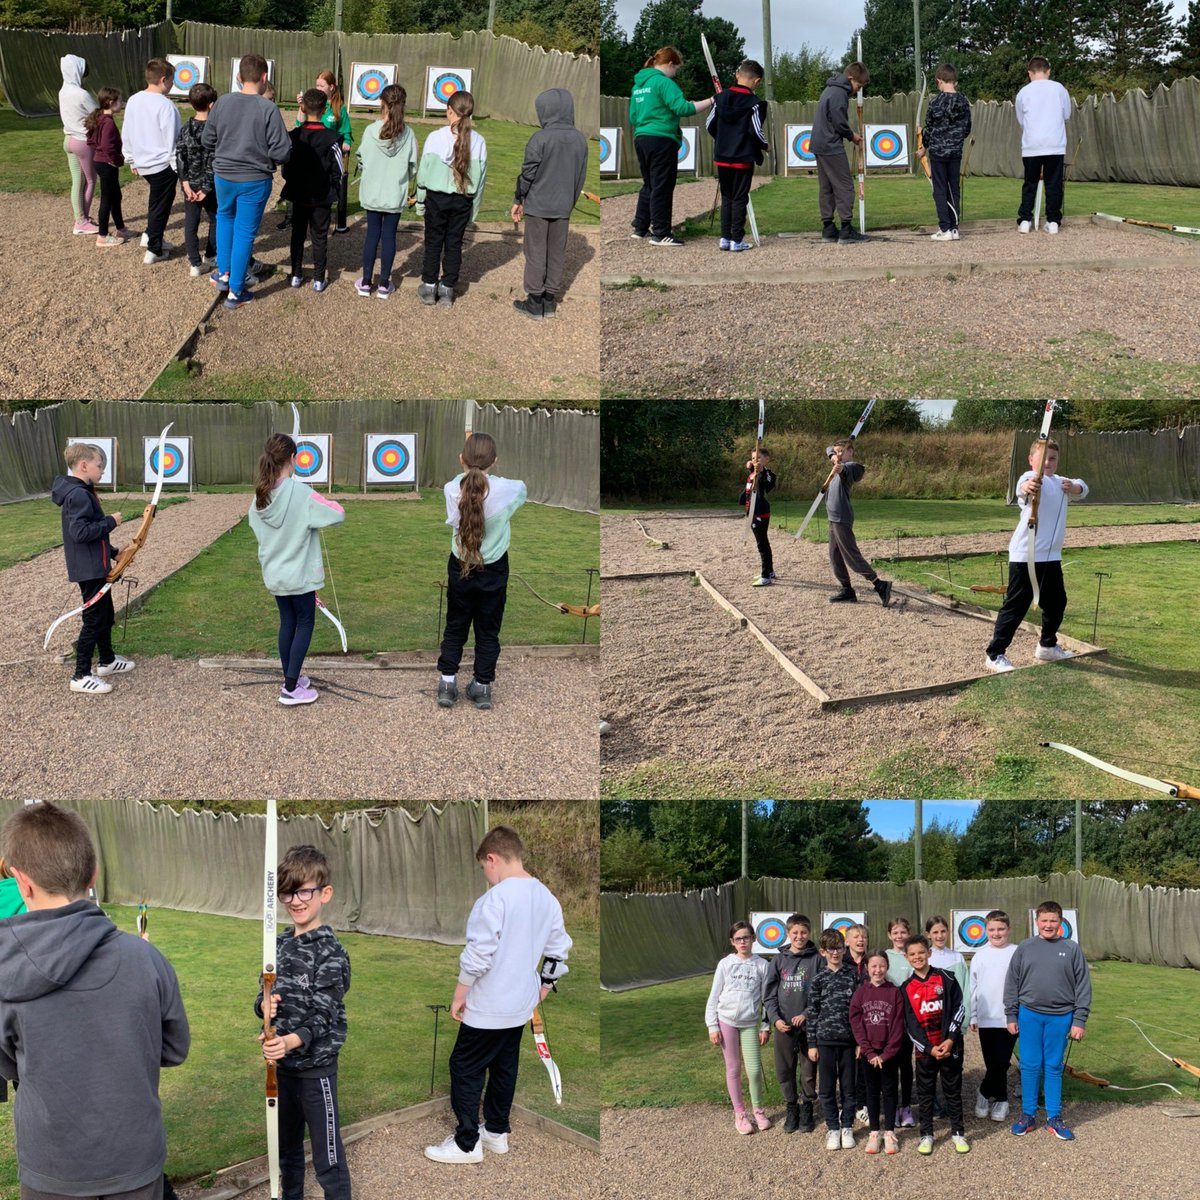 Group 1 finished their Kingswood adventure off with archery! 🏹🎯 What a wonderful few days it has been! The children really have loved their residential and they will have so many stories to share with you once they get back home. See you all soon!